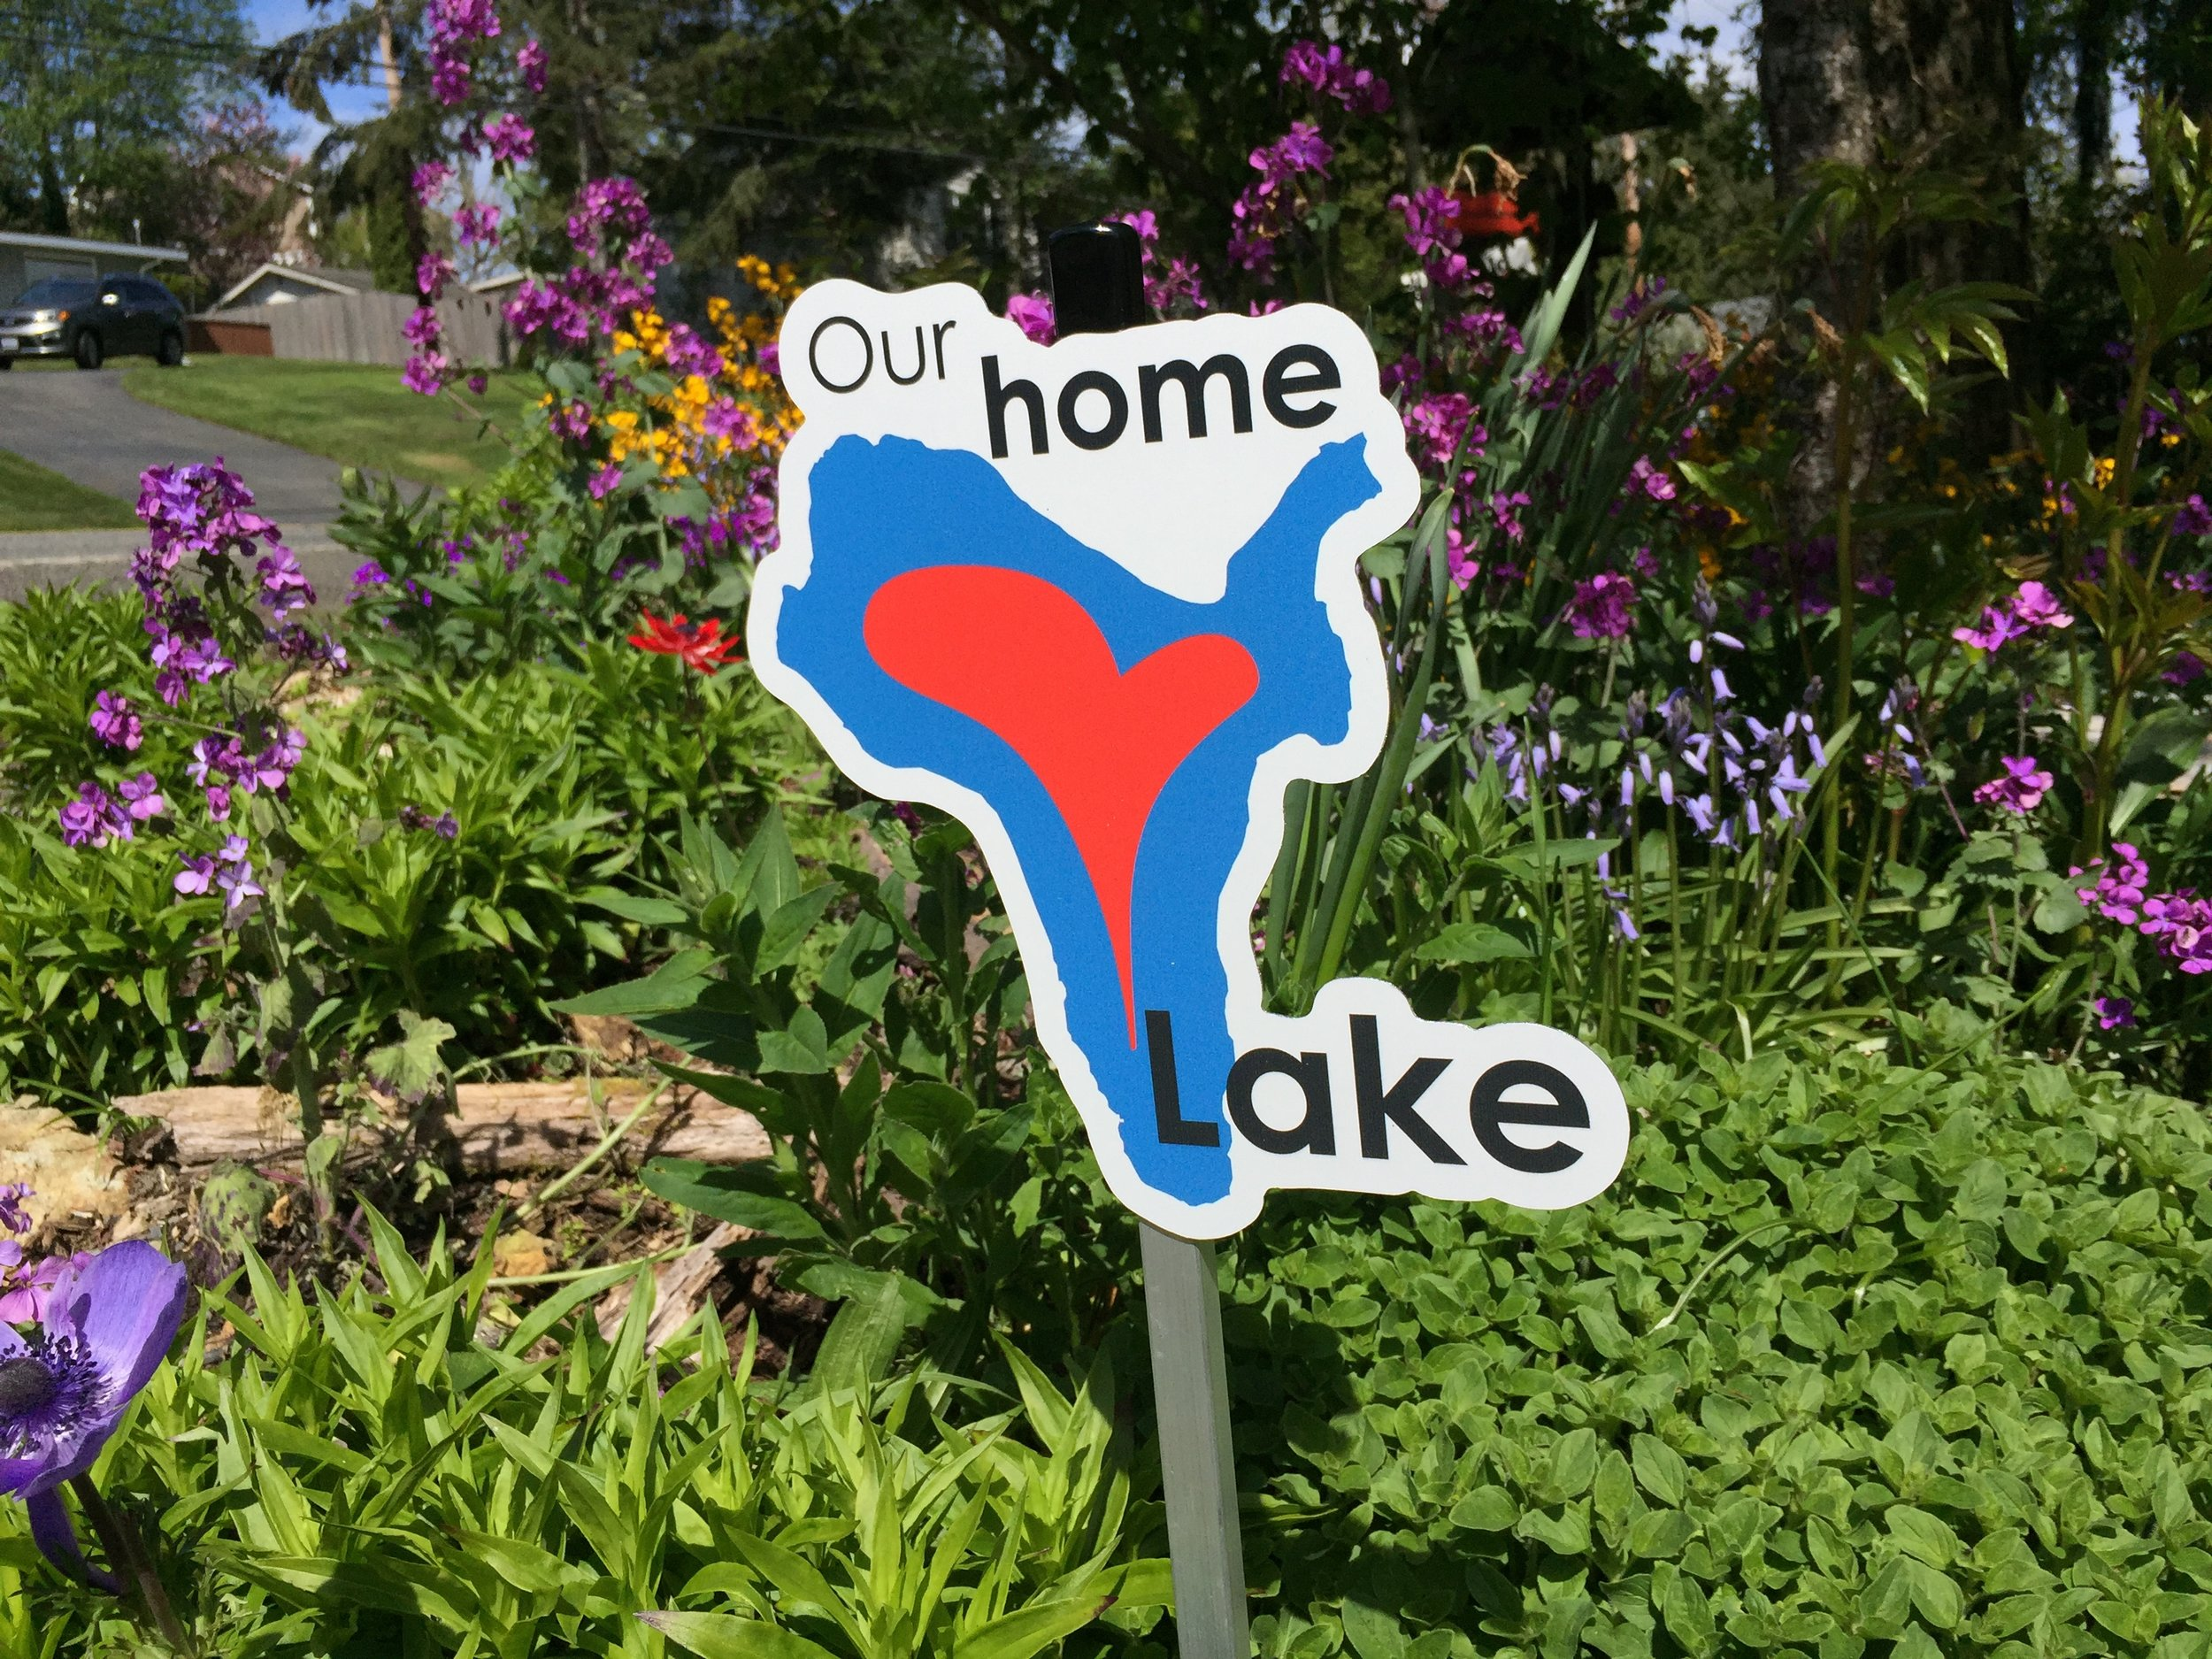 YOu can earn this sign by becoming a Lake-Friendly Certified home.